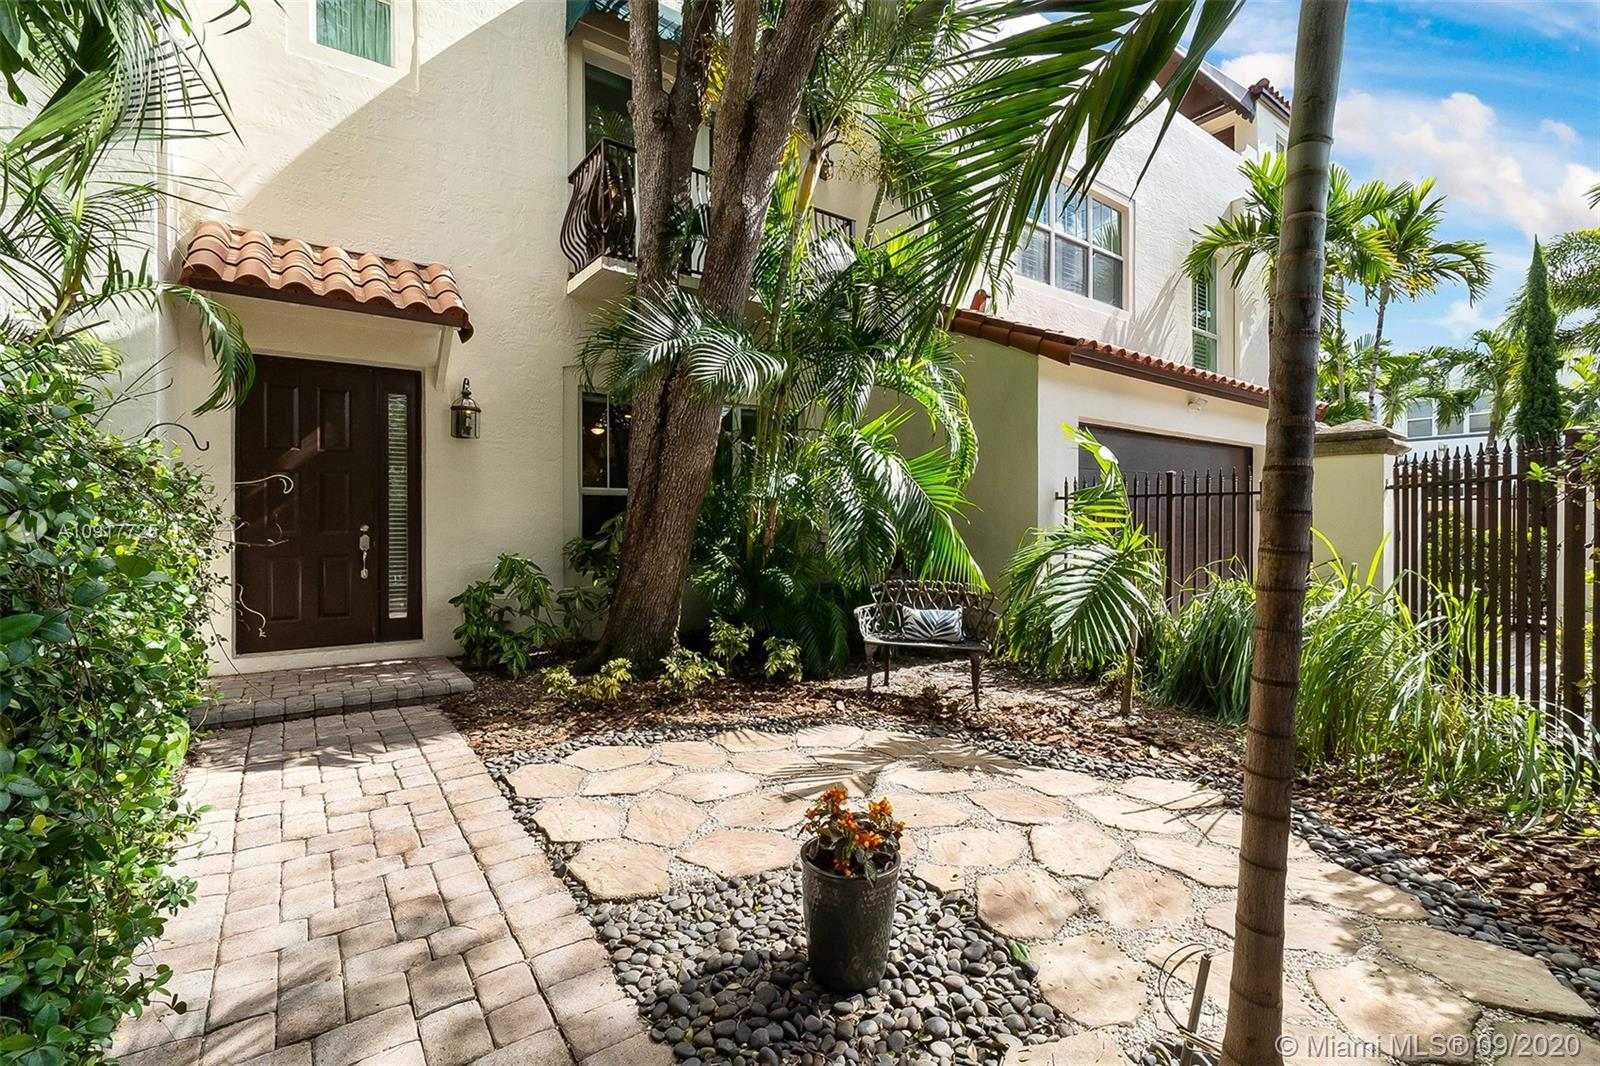 Situated in one of the most coveted areas of Fort Lauderdale sits this spacious 3 BD/2.5 BA townhous